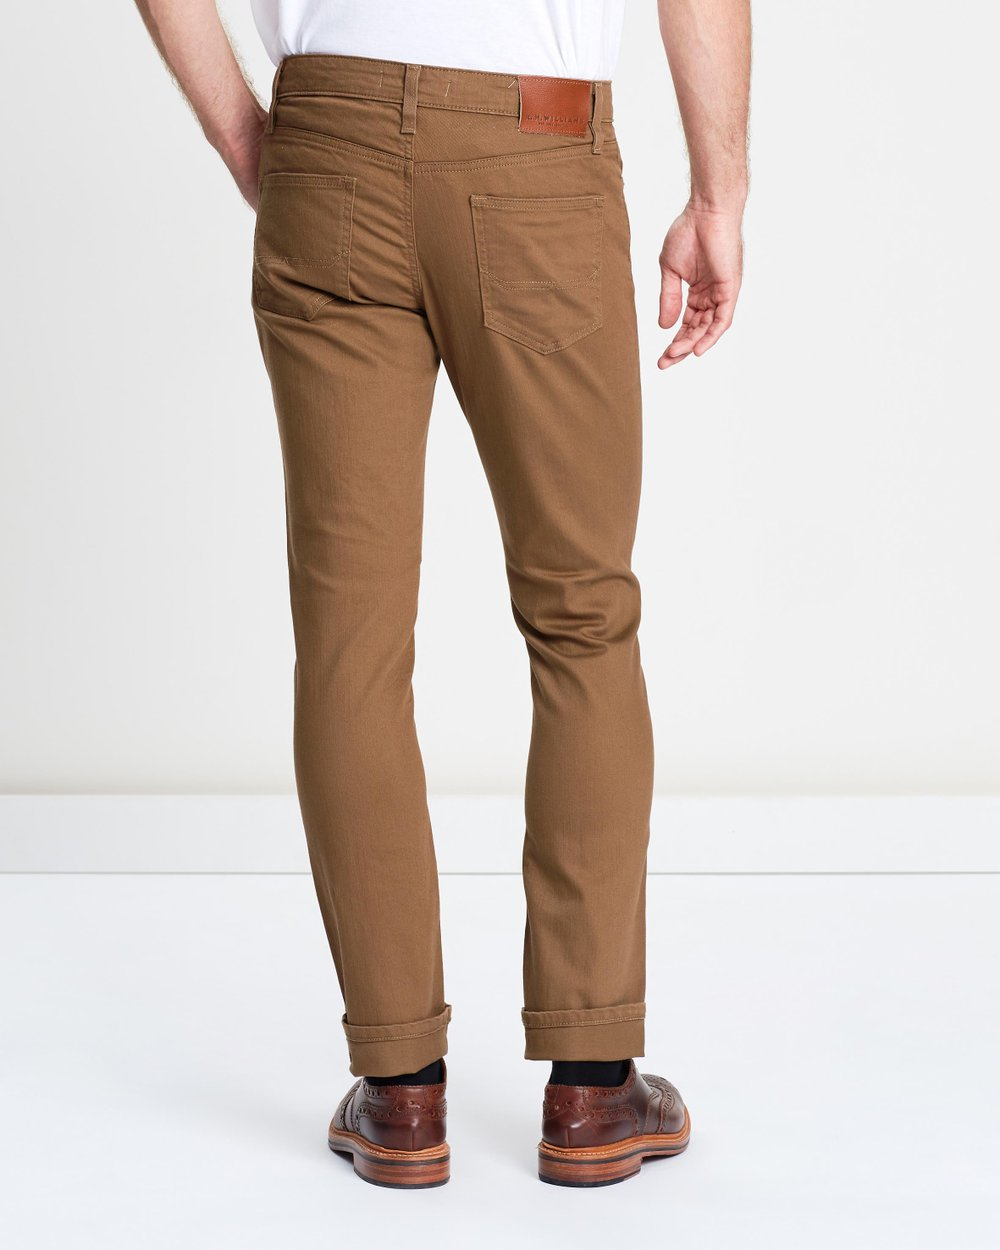 9406a6863cd6 Dusty Jeans by R.M. Williams Online